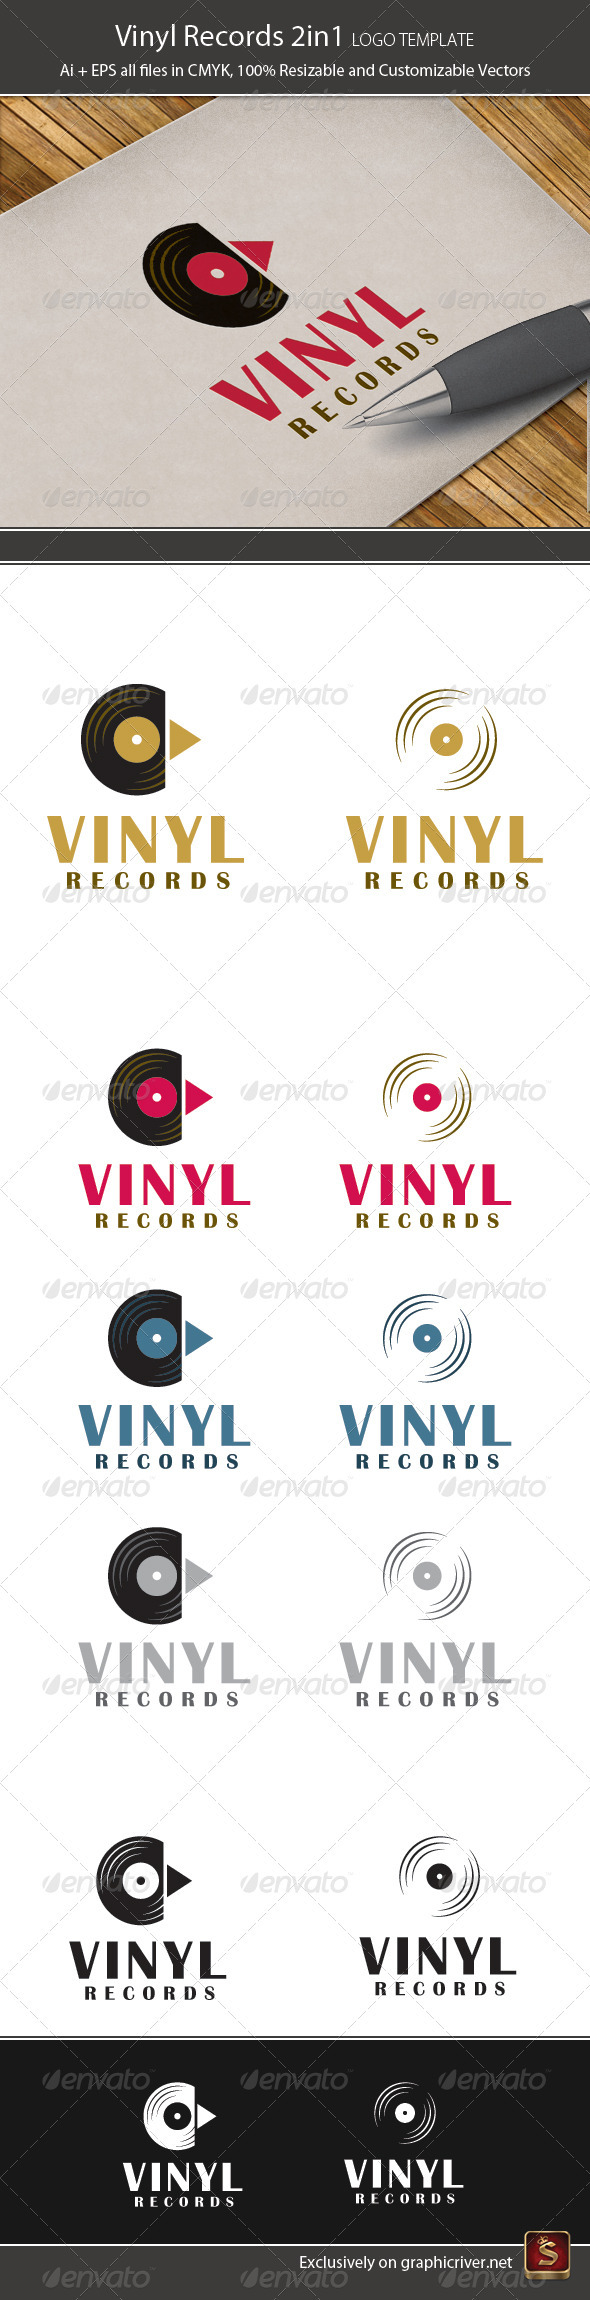 Vinyl Records 2in1 Logo Template - Objects Logo Templates